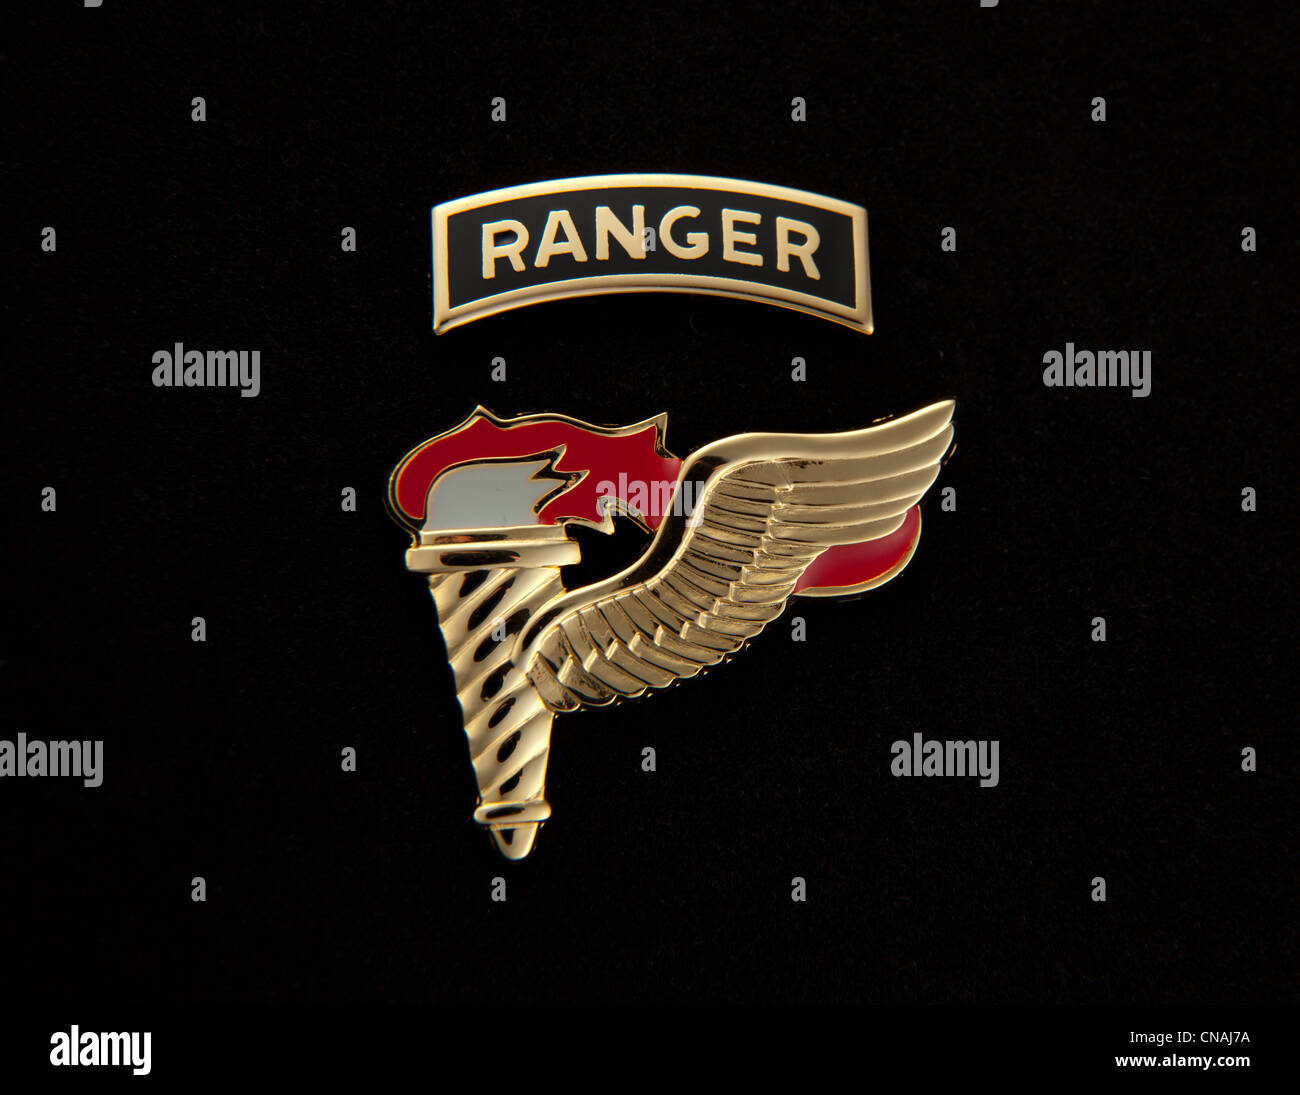 Ranger Tab Stock Photos Ranger Tab Stock Images Alamy